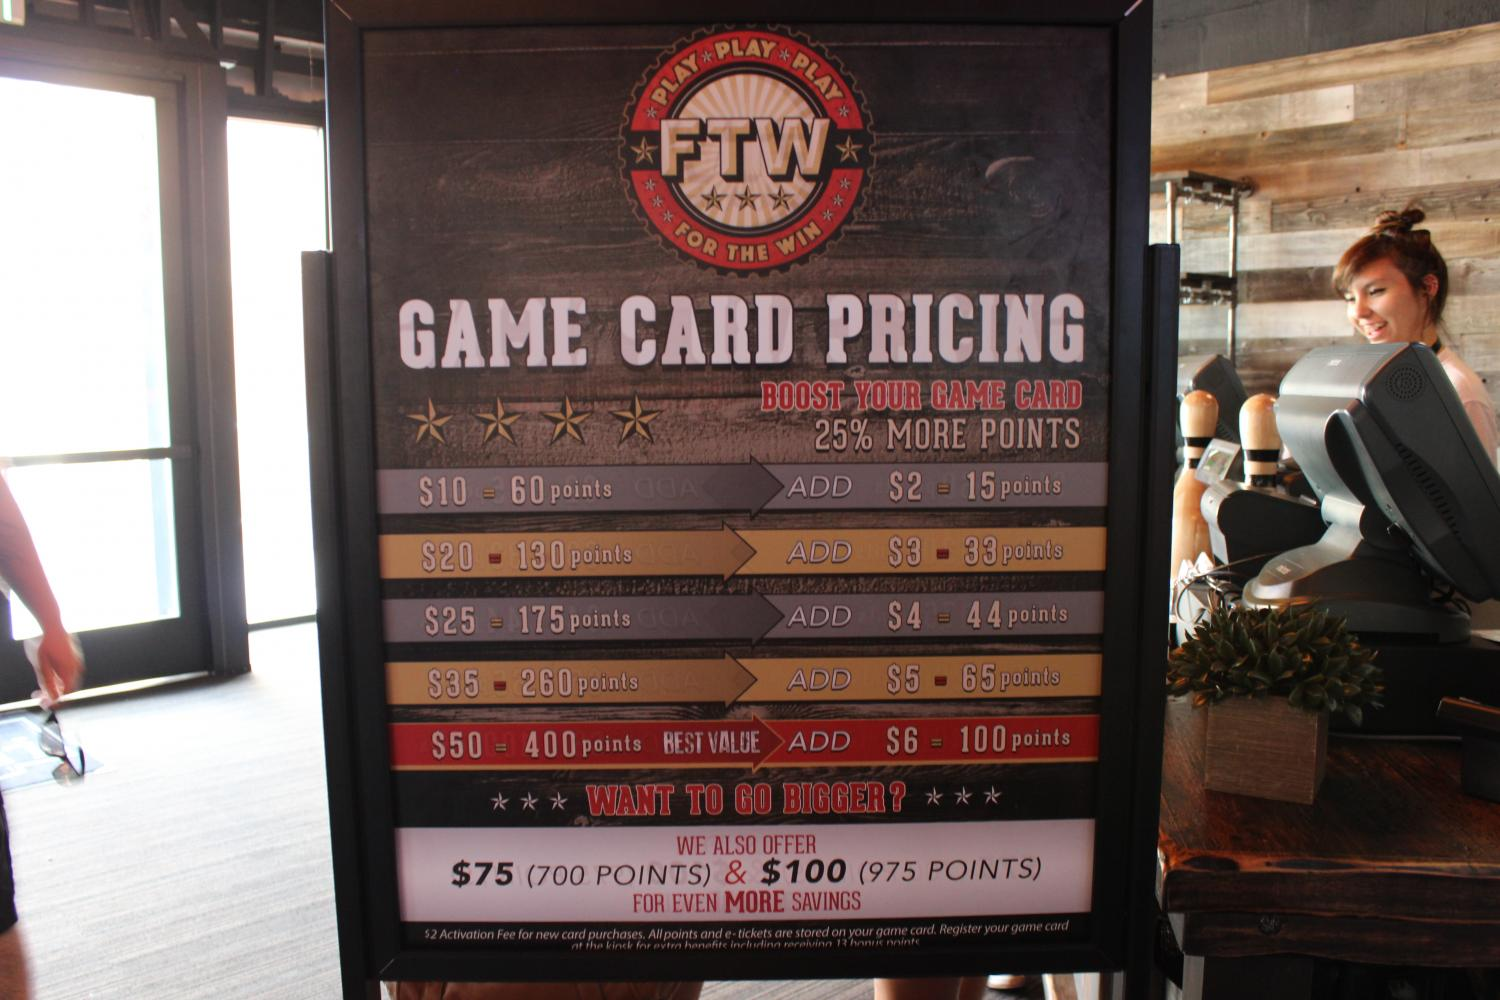 Prices+for+the+game+cards+people+need+to+purchase+to+play+games.+